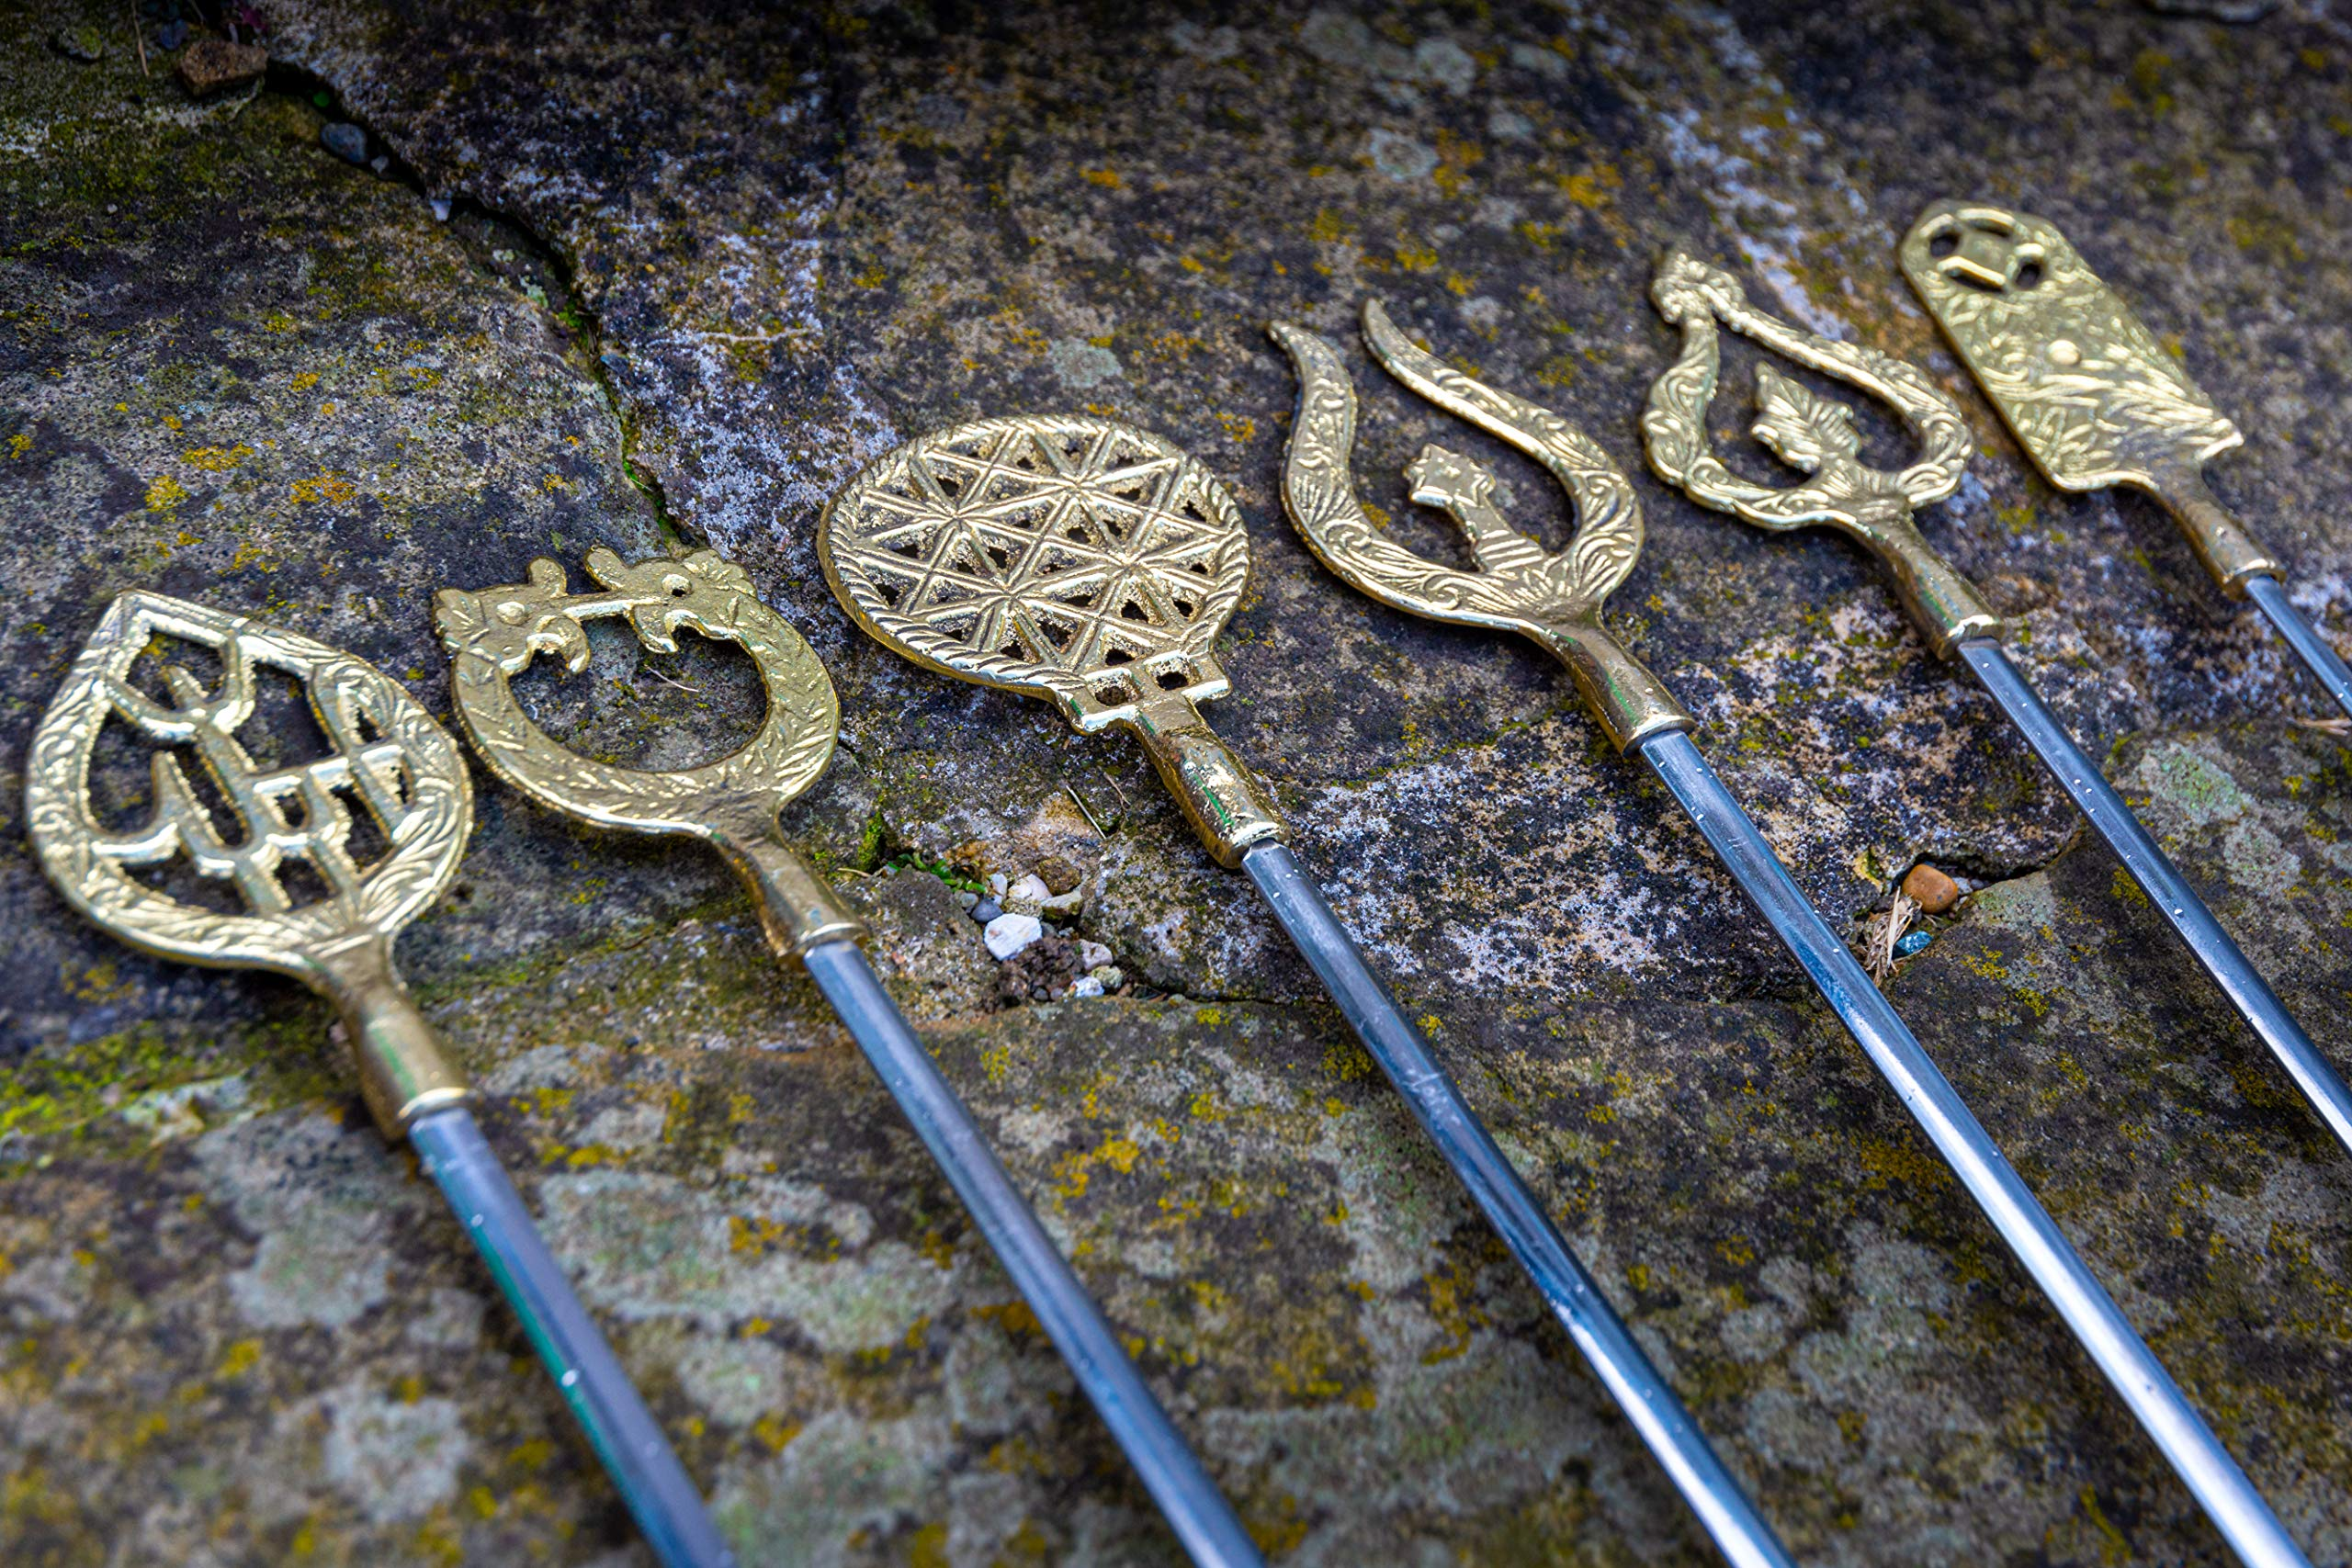 JD Europe Ltd 12 pcs Vintage Turkish Stainless Steel Barbecue Skewers with Brass Handles. Made in Turkey. by JD Europe